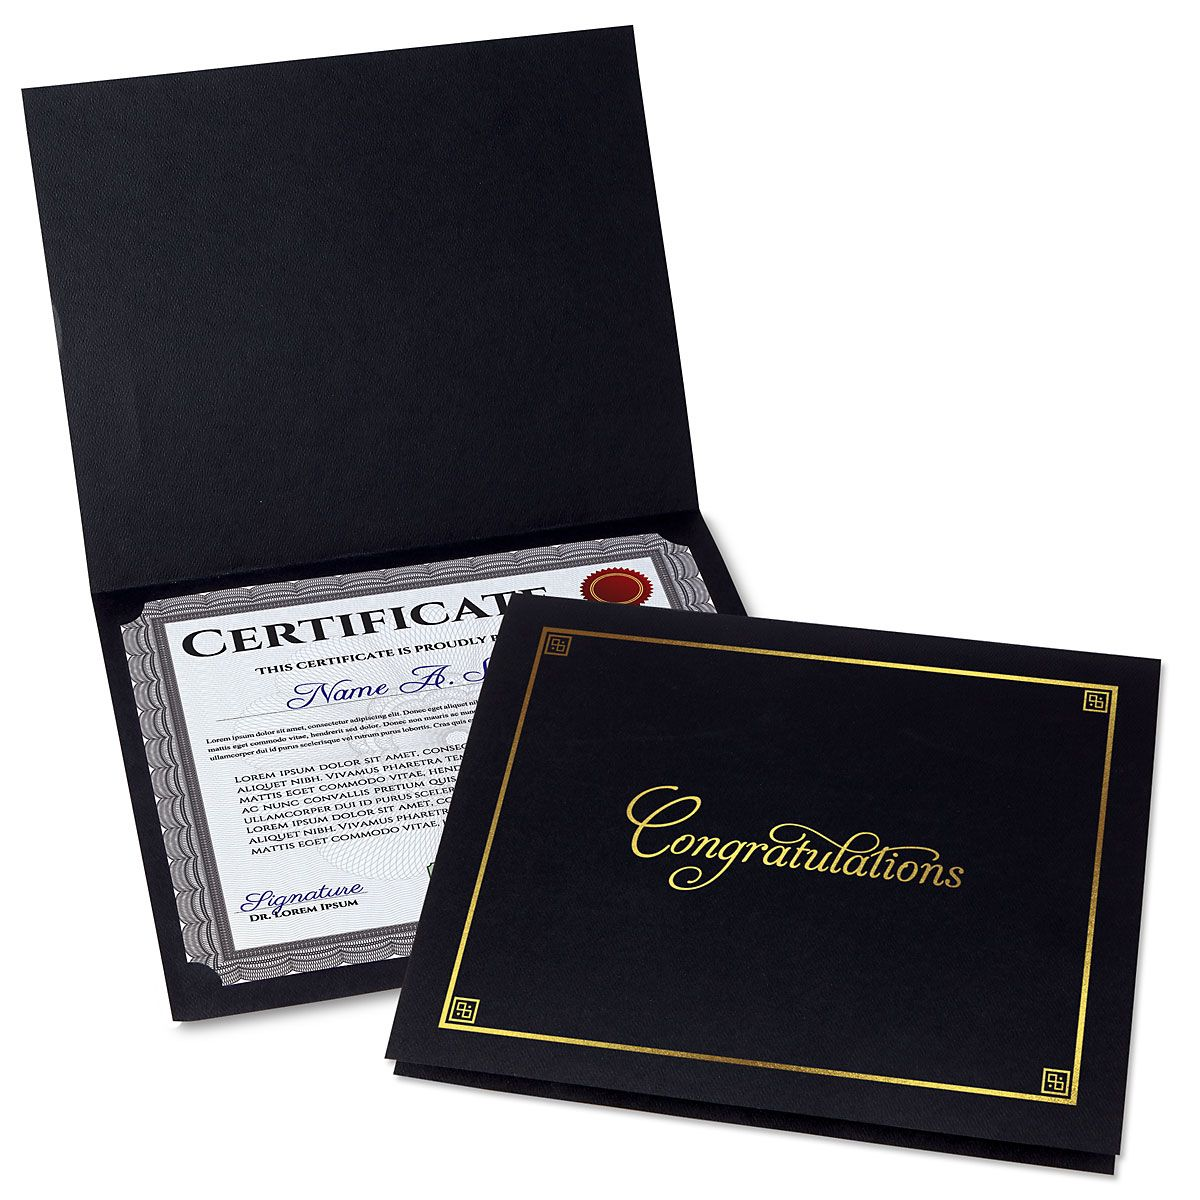 Congratulations Black Certificate Folder with Gold Border - Set of 25